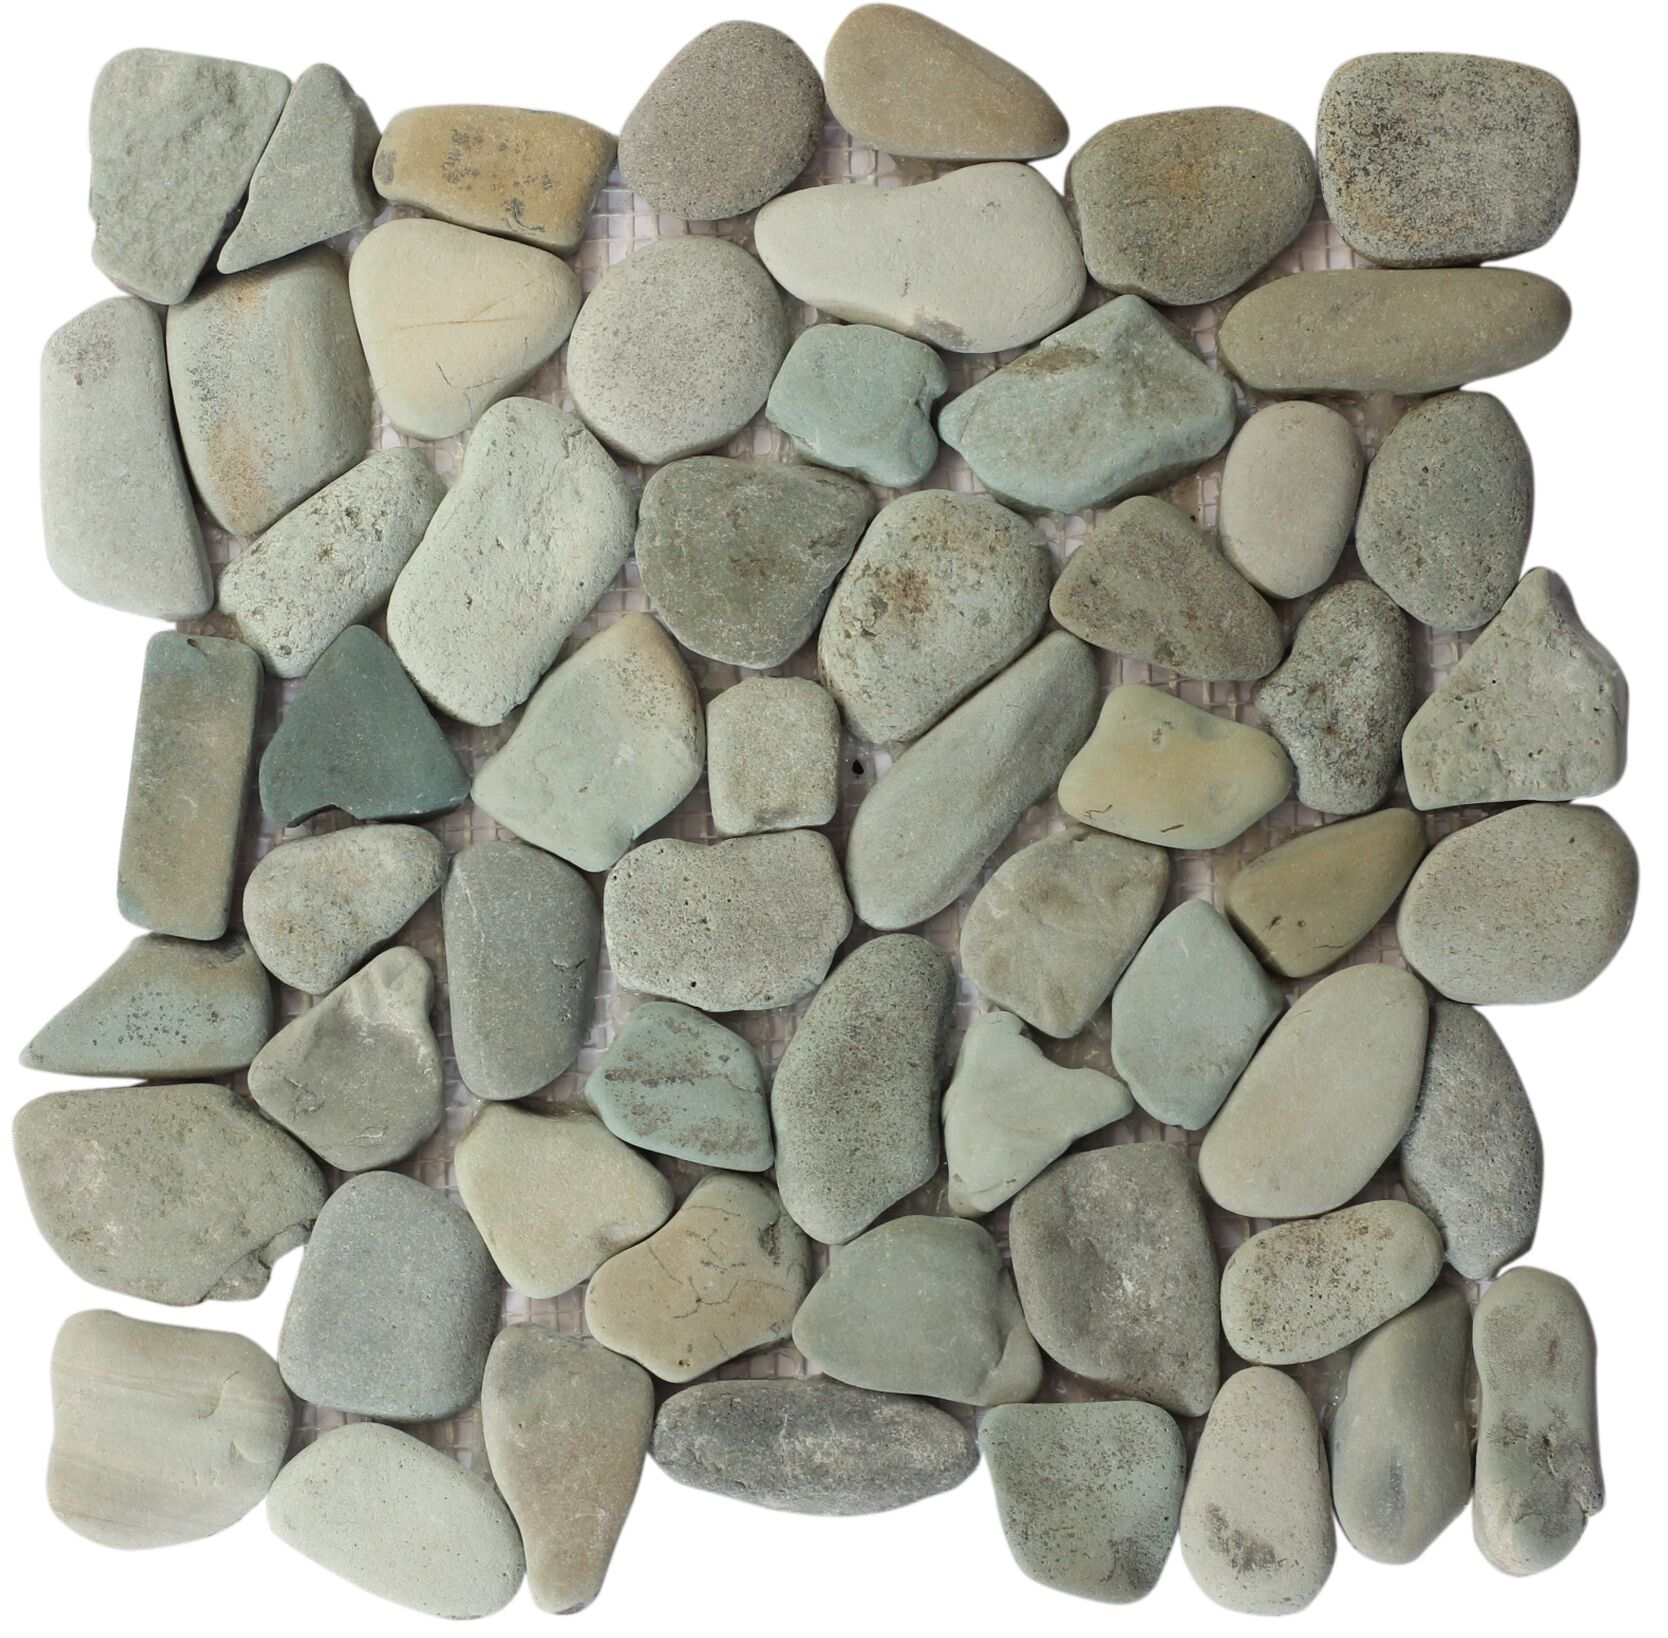 Gorontalo Green Indonesian Rounded Pebble Mosaic